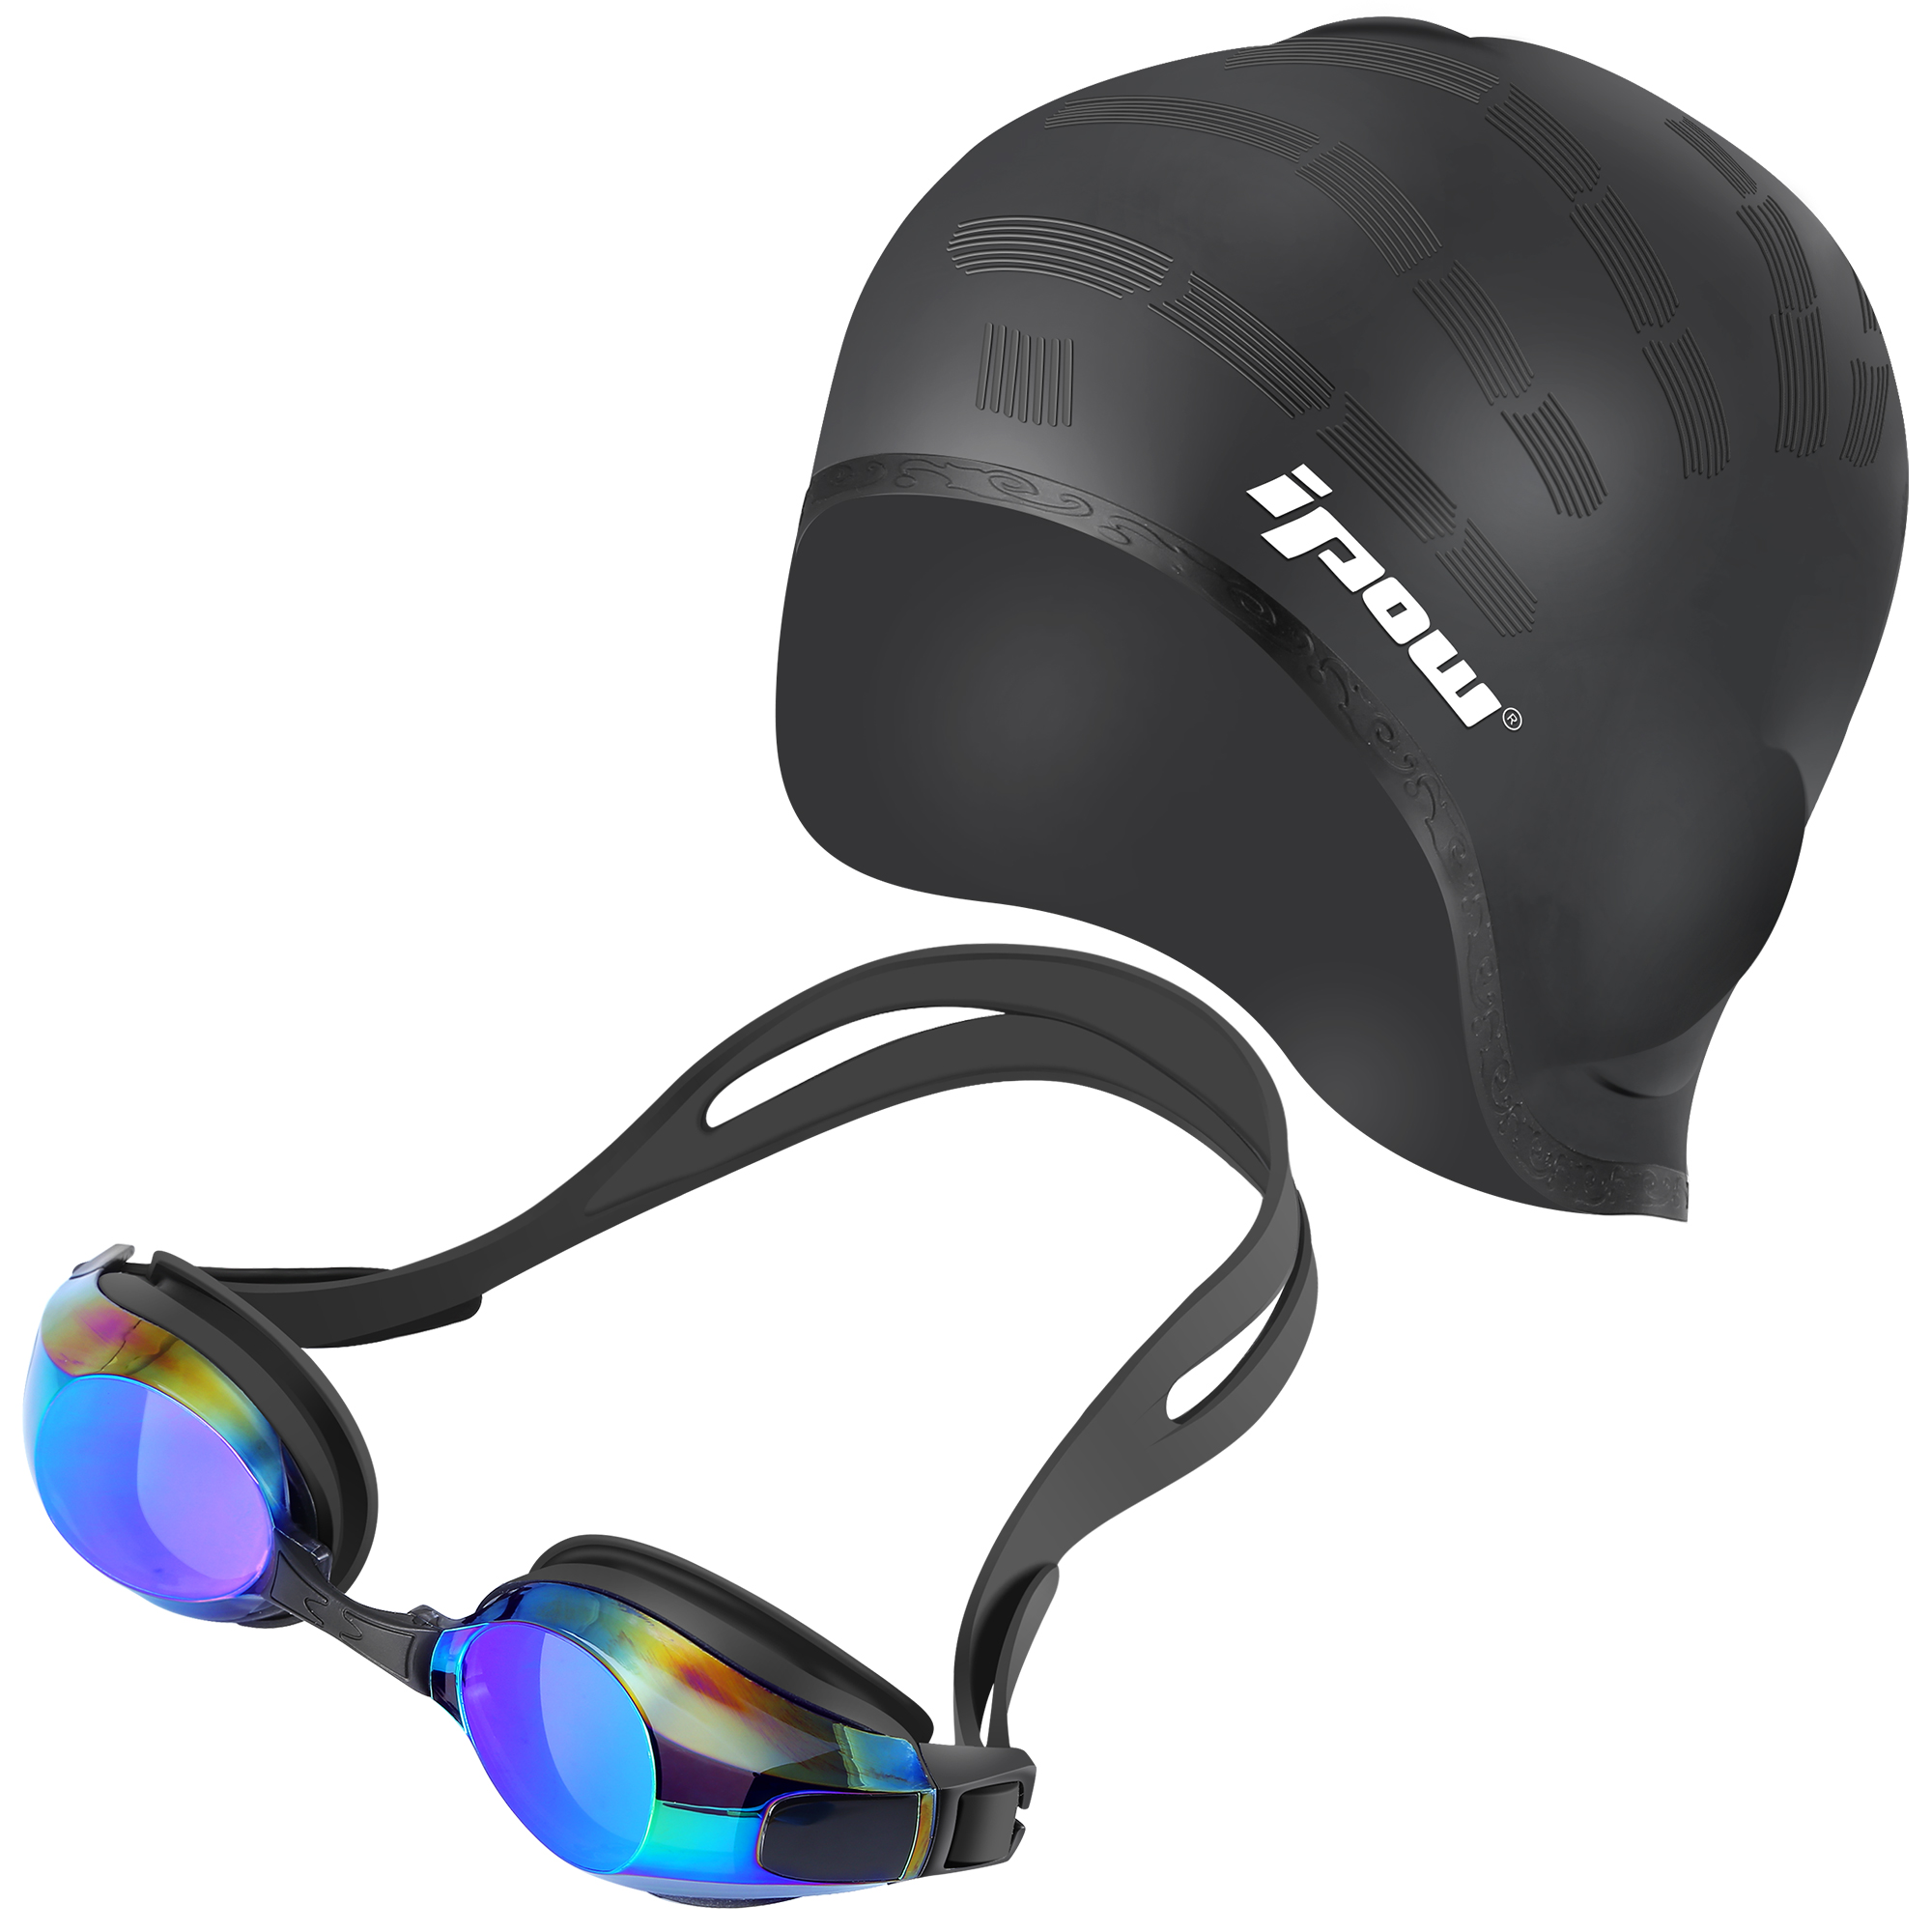 Swimming Goggles and Cap,IPOW Waterproof Silicone Swimming Cap Hat + Anti-fog Swim Goggle Swimming Glasses Set for for Adults Women Long Hair Men Kids Girls Boys Youth, Black